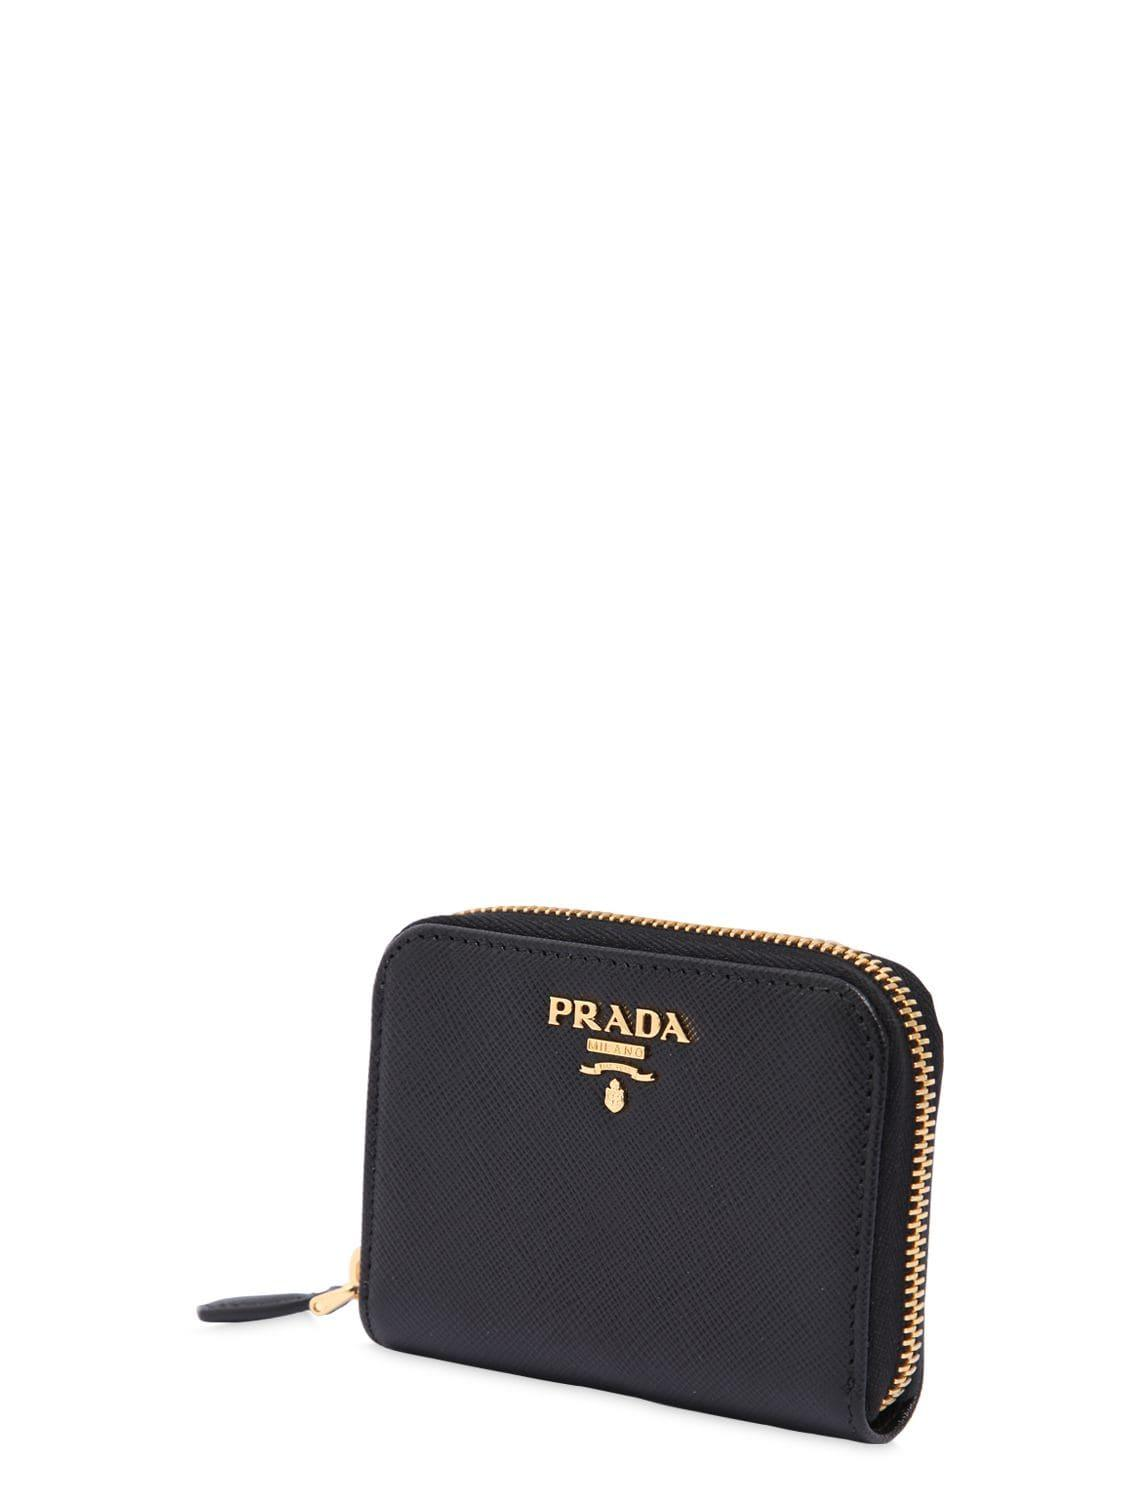 47241bf3be279b Prada Minuteria Leather Coin Case in Black - Save 8% - Lyst